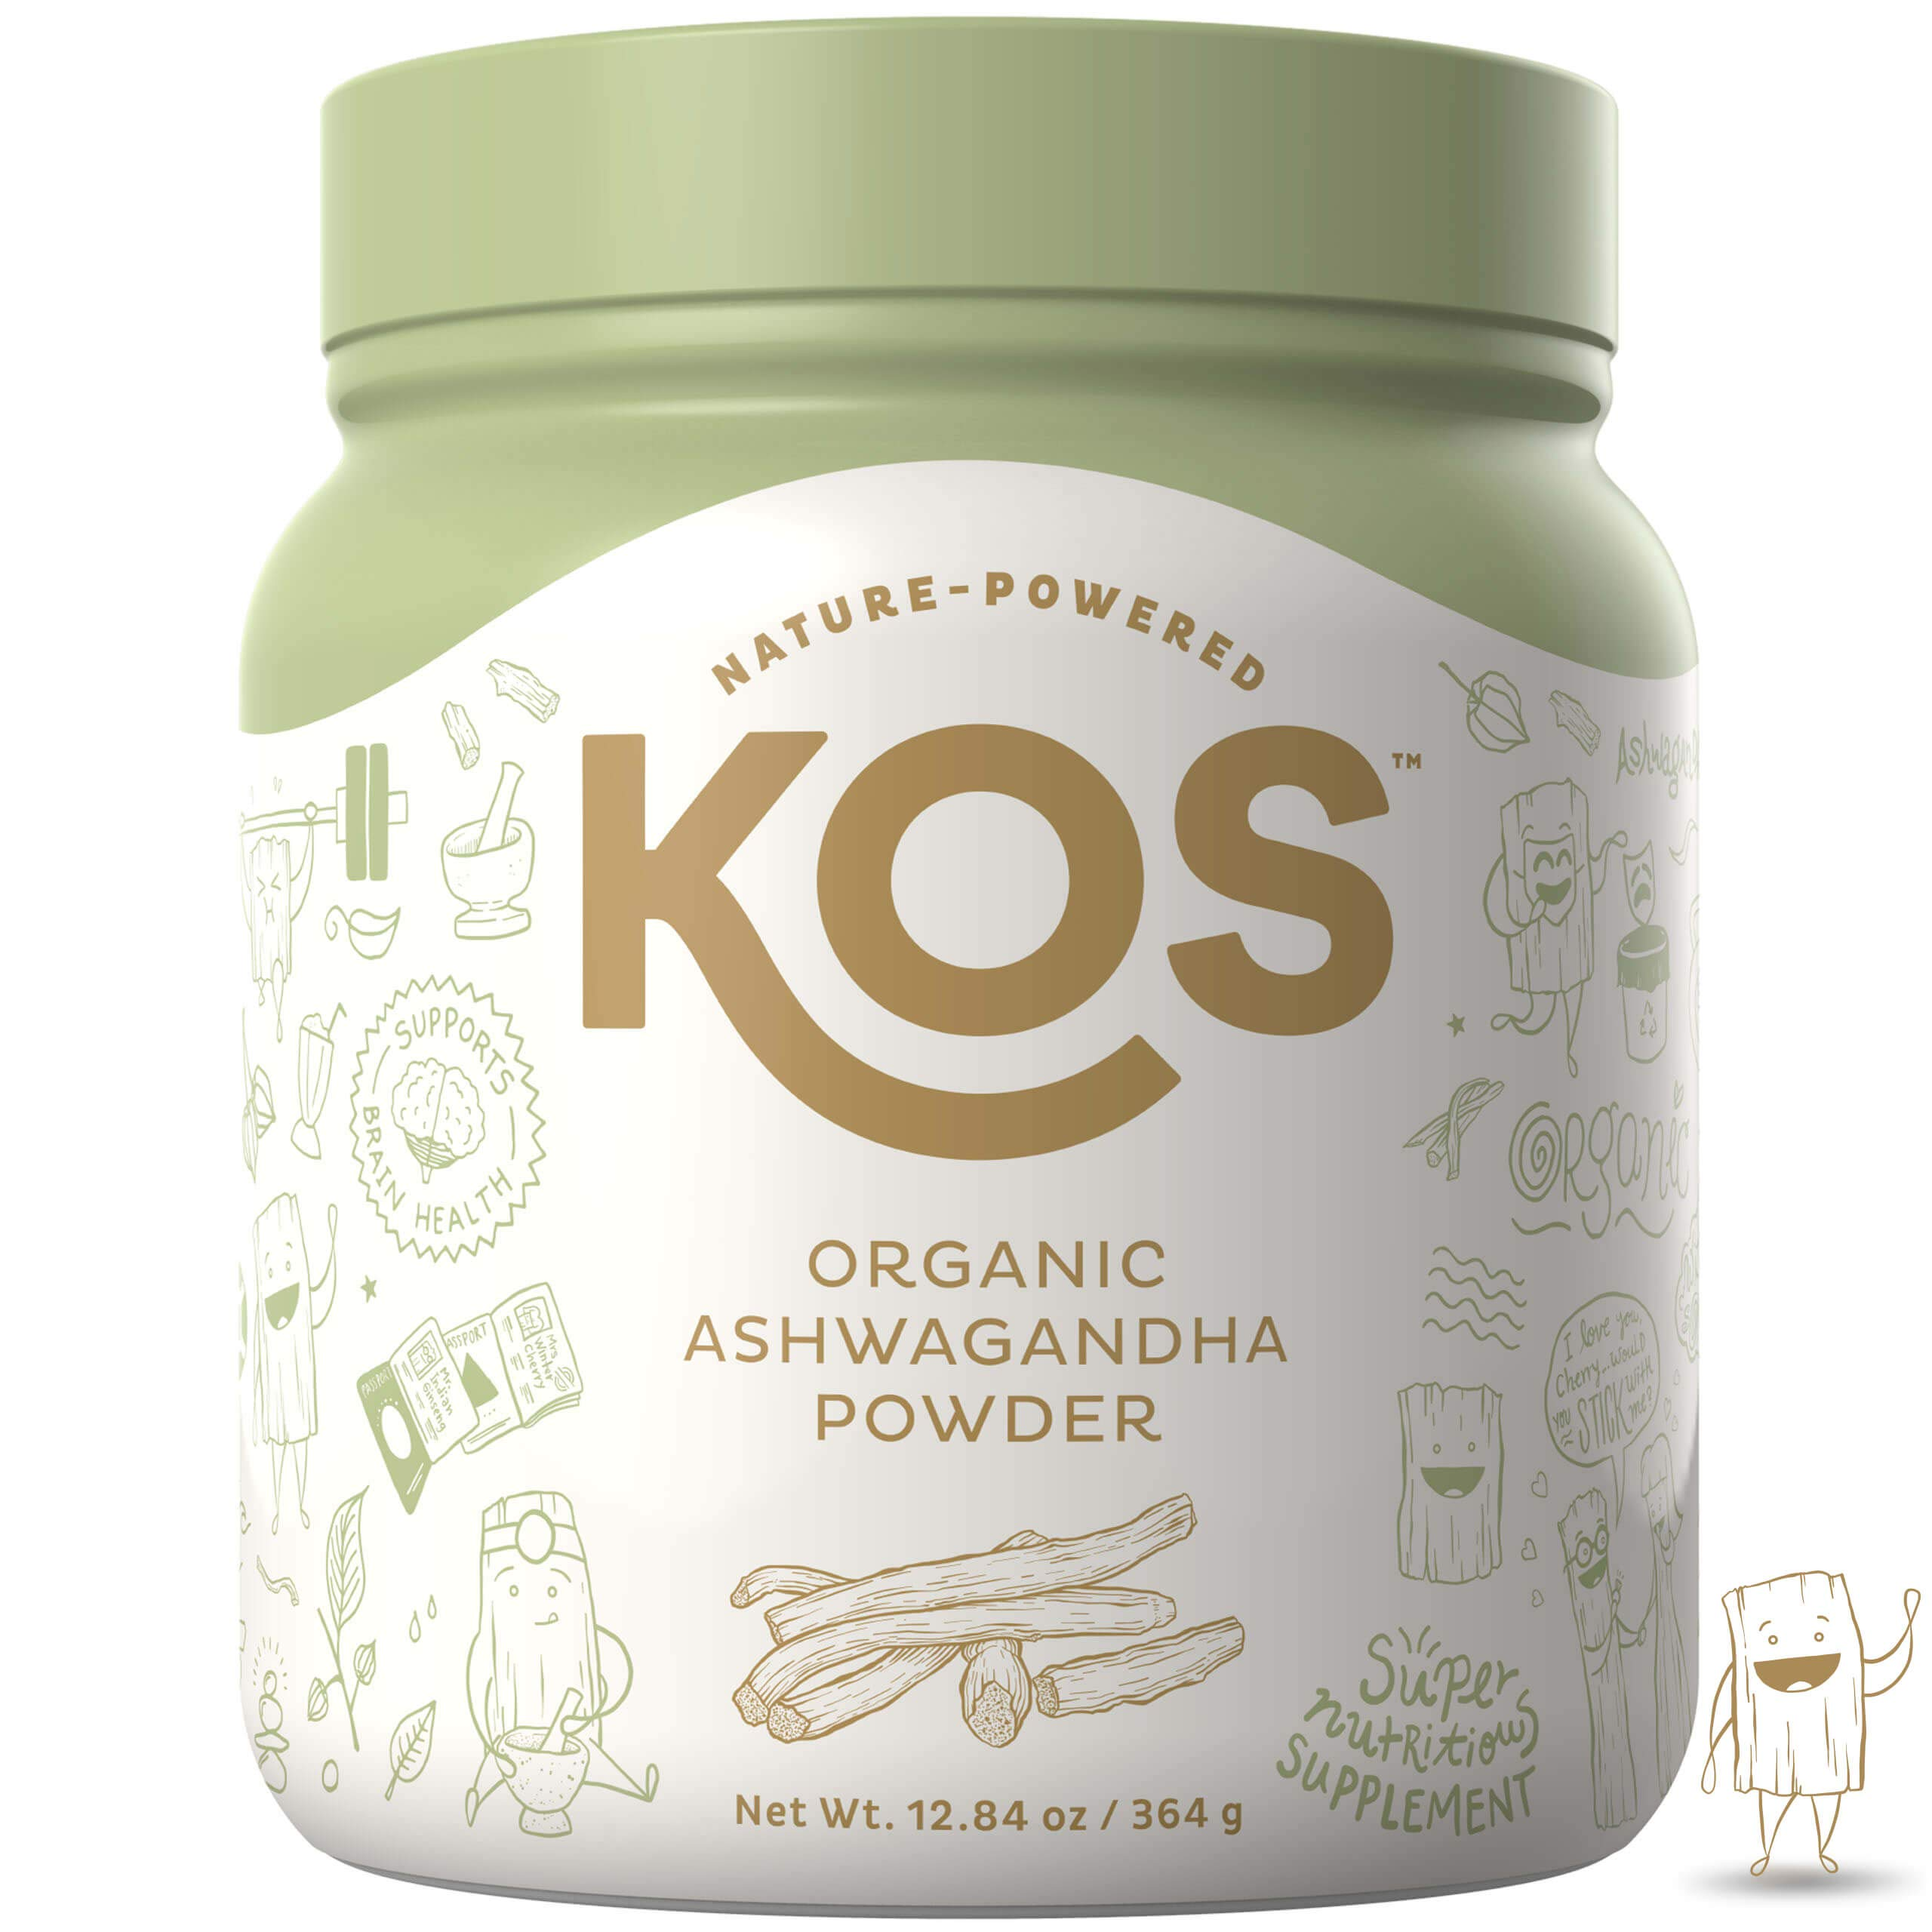 KOS Organic Ashwagandha Powder | Natural Anxiety Relief, Mood Enhancing Raw Ashwagandha Root Powder | USDA Organic, Mood Balancing, Immunity Enhancing Plant Based Ingredient, 364g, 104 Servings